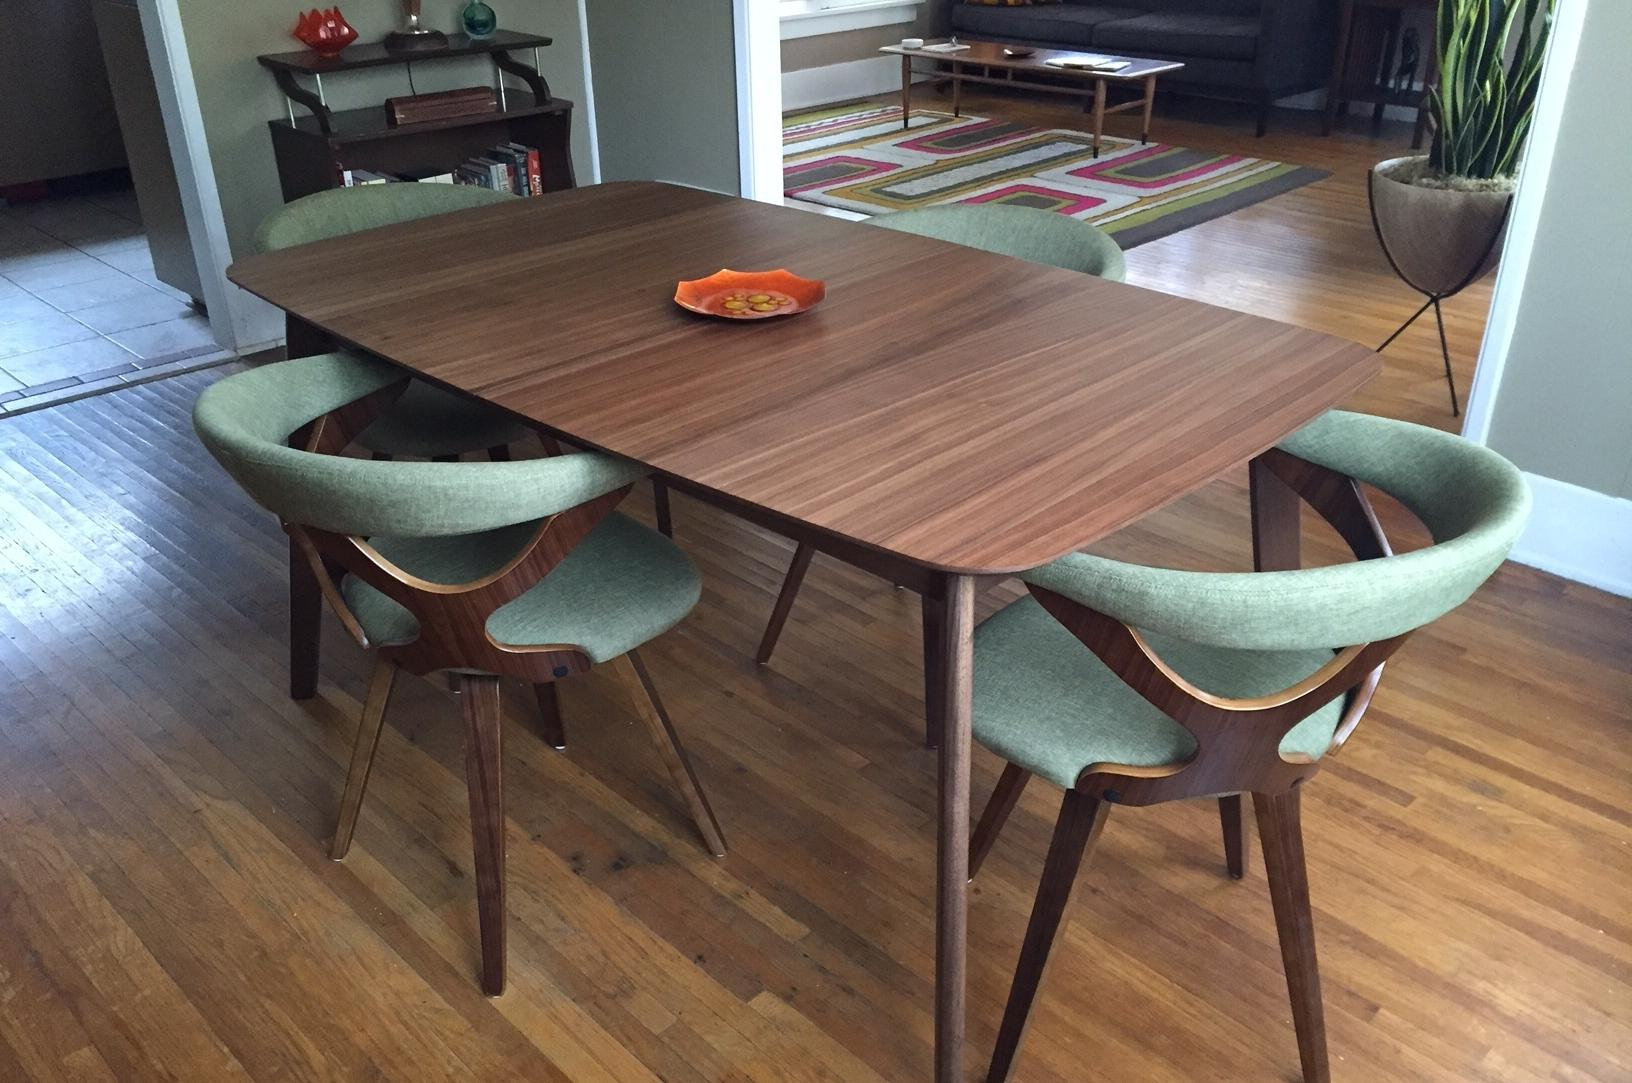 Mix And Match Is The Modern Way To Furnish A Dining Room Regarding Famous Mid Century Rectangular Top Dining Tables With Wood Legs (View 19 of 30)